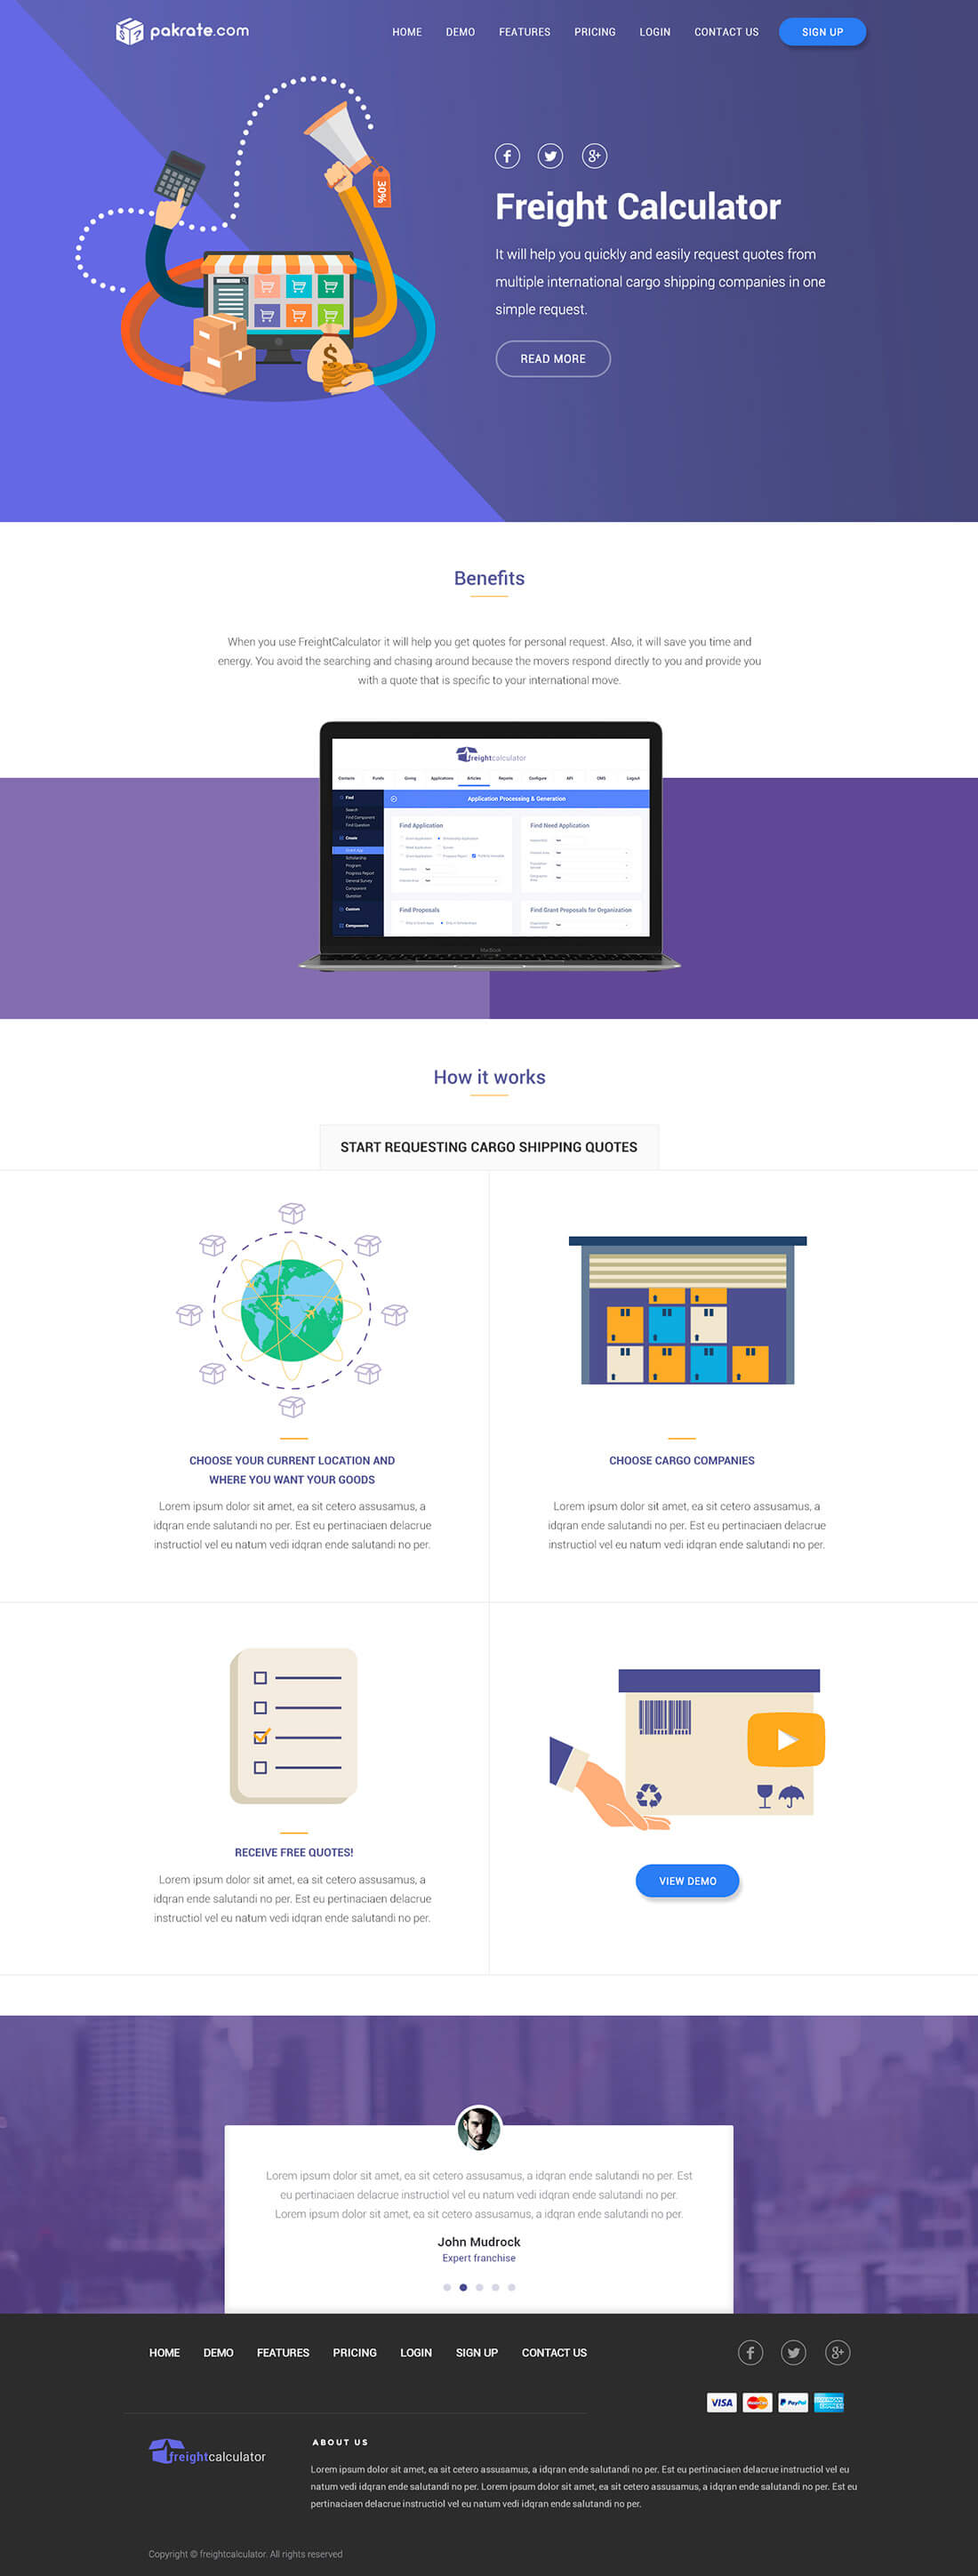 Colors in Graphic and Web Design: Purple